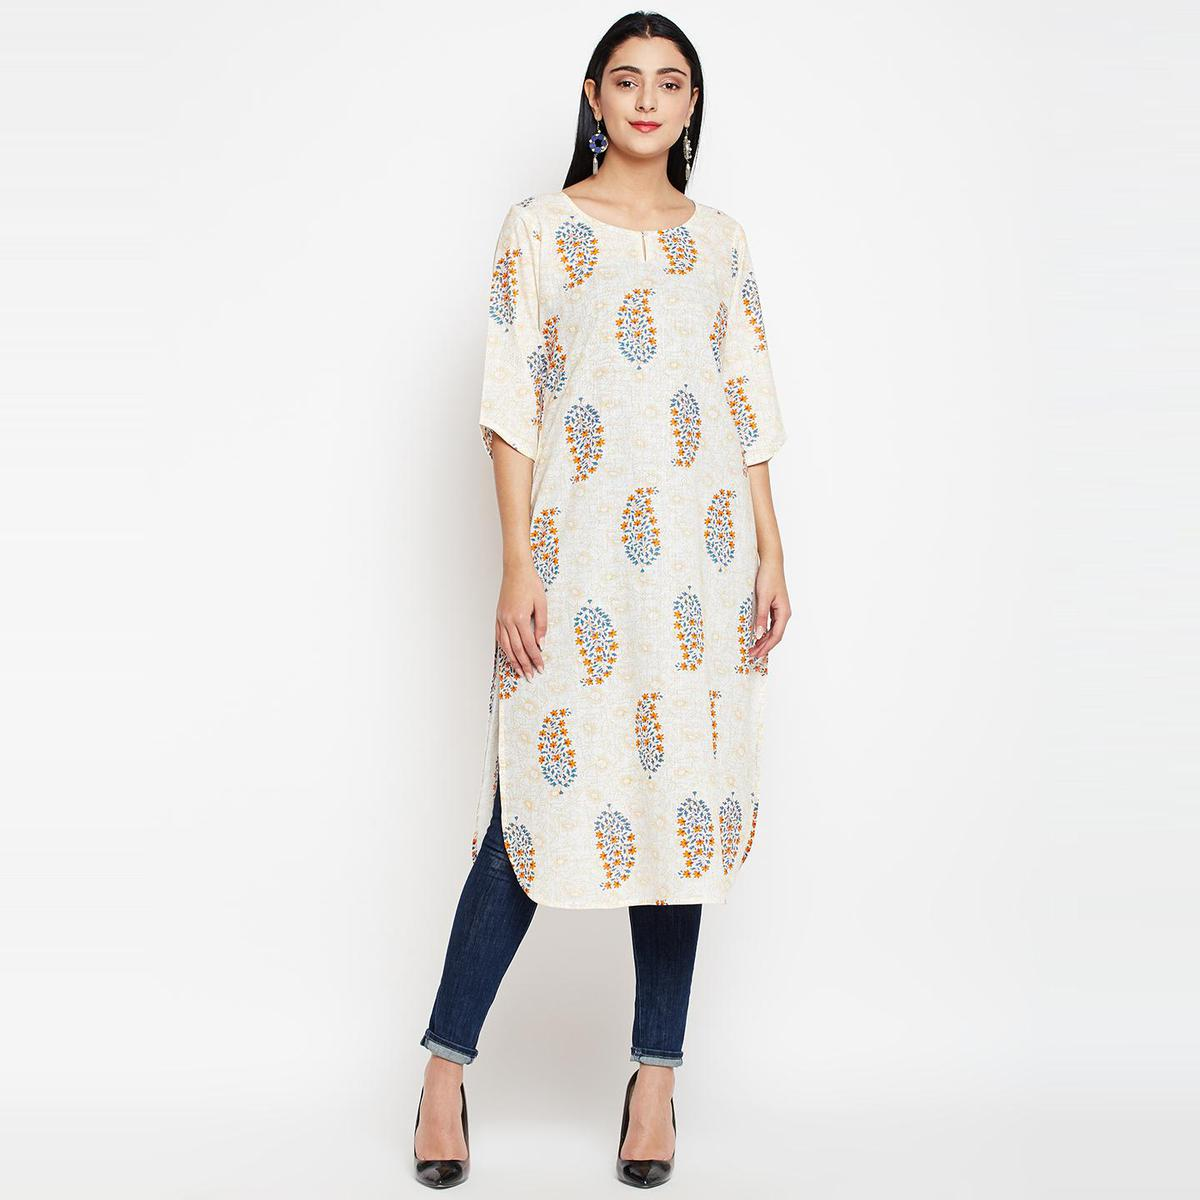 Darzaania - Cream Colored Casual Wear Floral-Paisley Printed Cotton Kurti